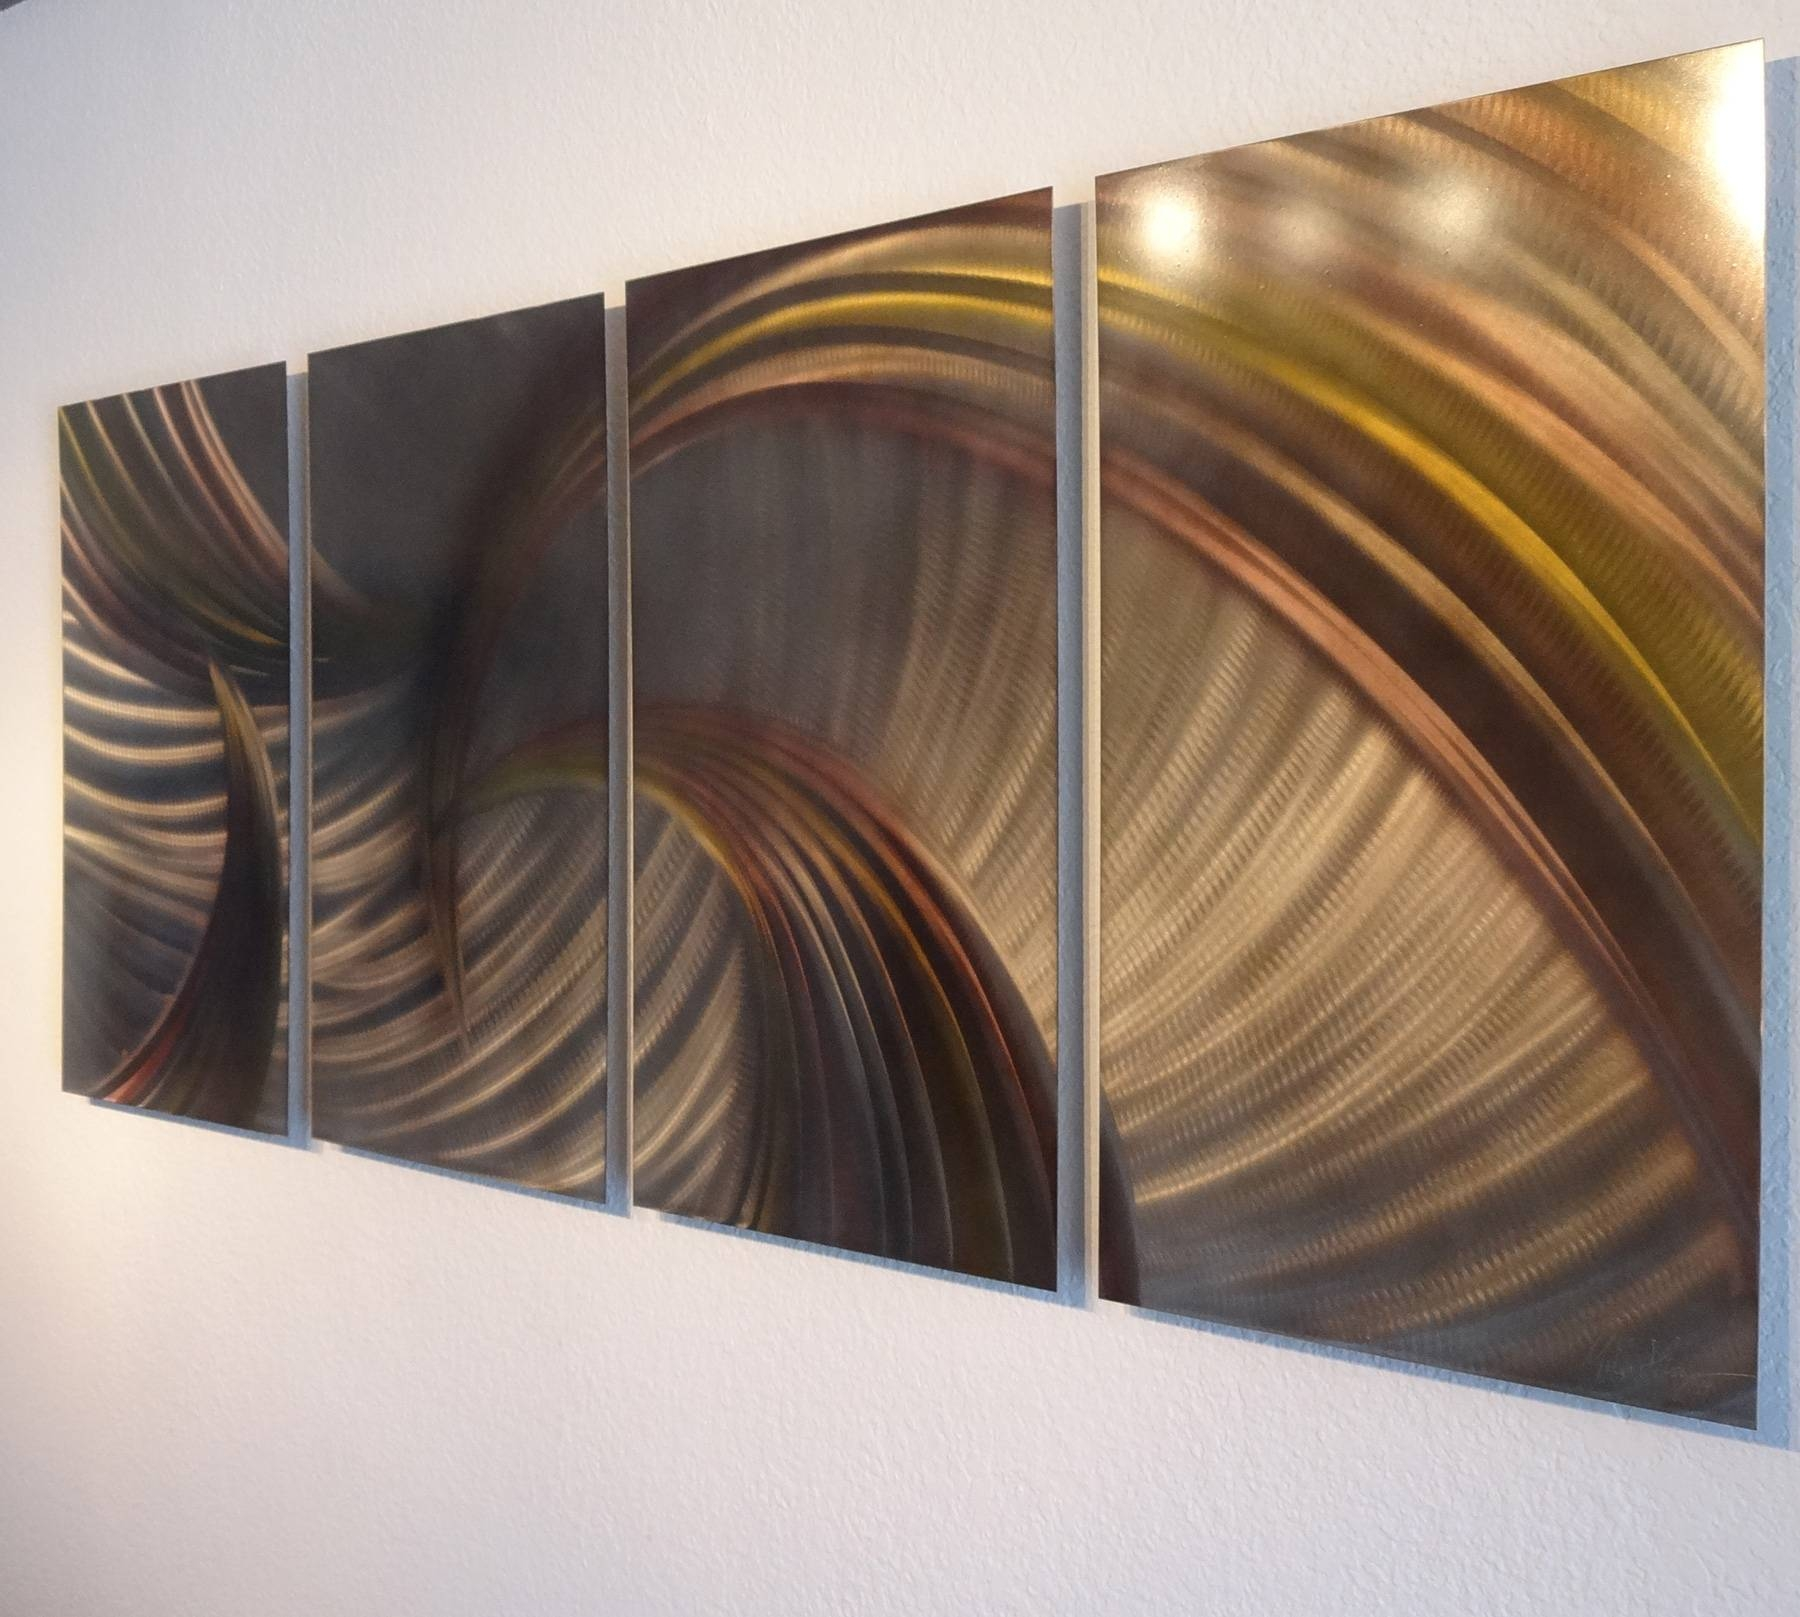 Tempest Bronze – Abstract Metal Wall Art Contemporary Modern Decor Within Most Recent Bronze Metal Wall Art (View 5 of 20)